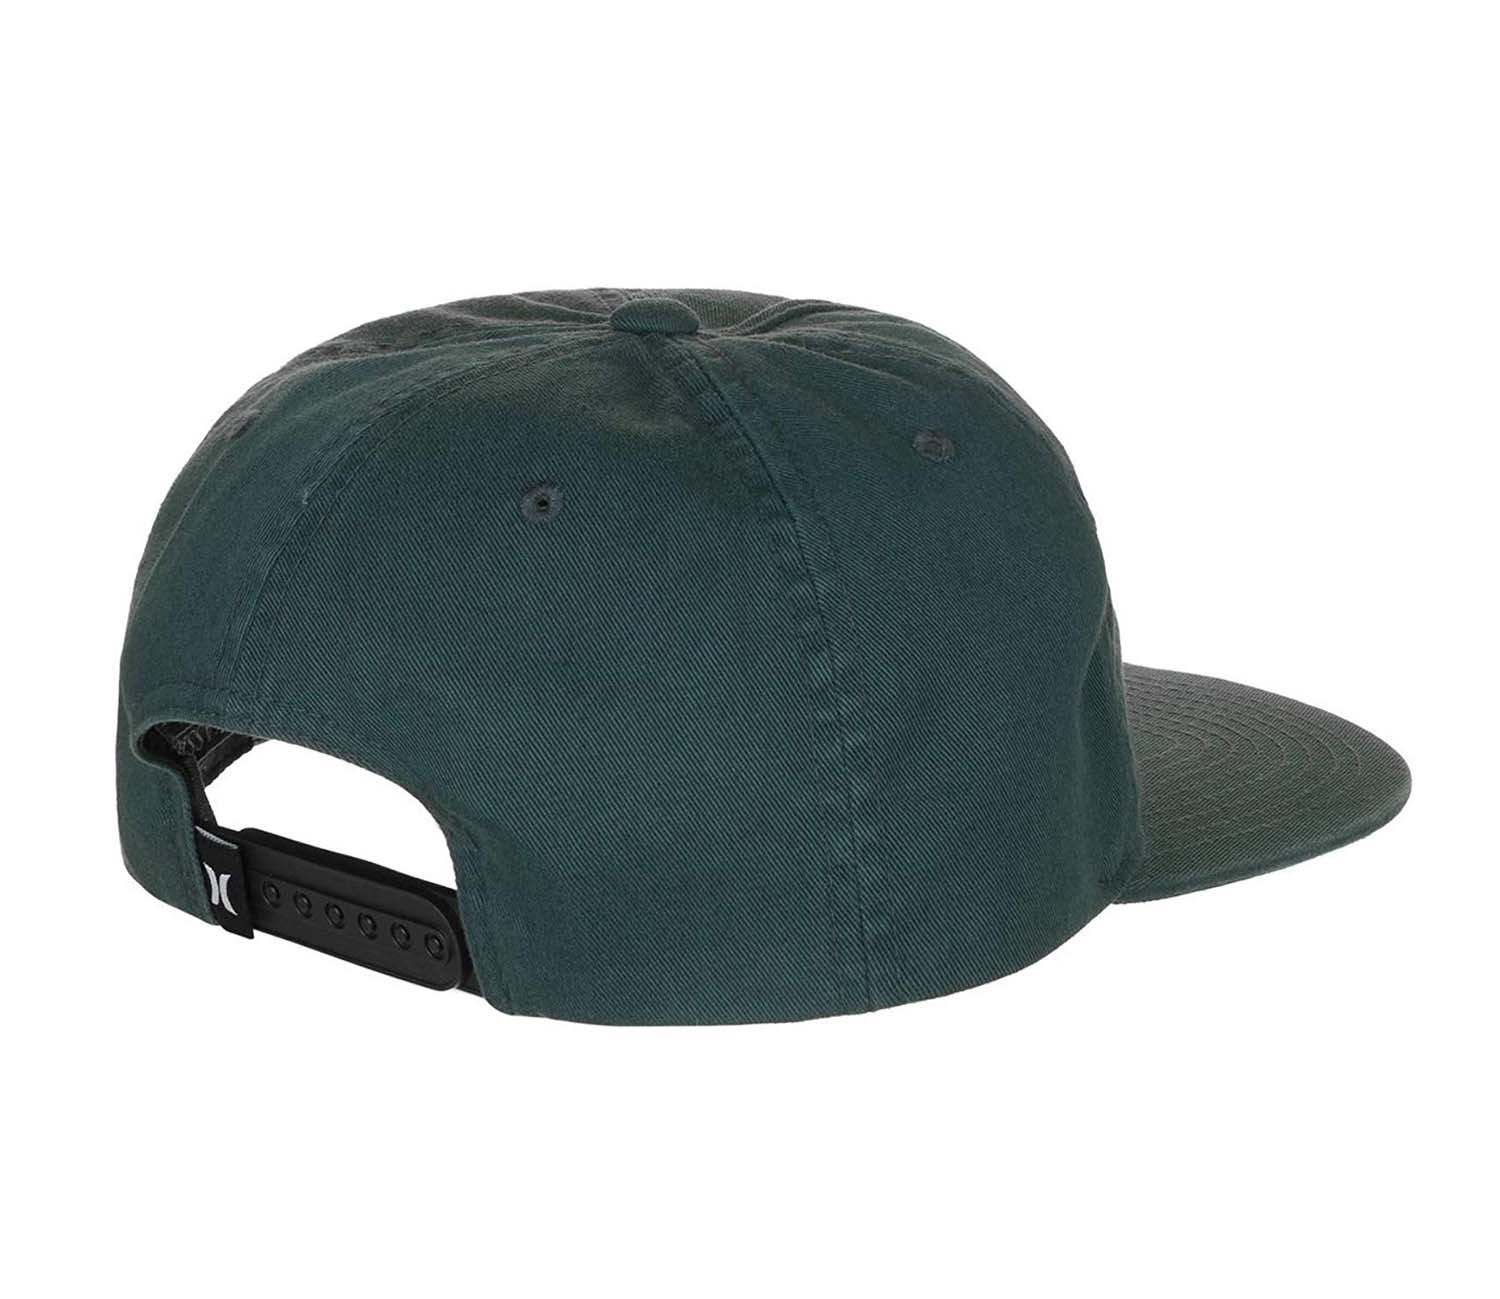 8dabc80a65647 Hurley Men s No Bueno Adjustable Snapback Hat-Space Blue-One Size ...